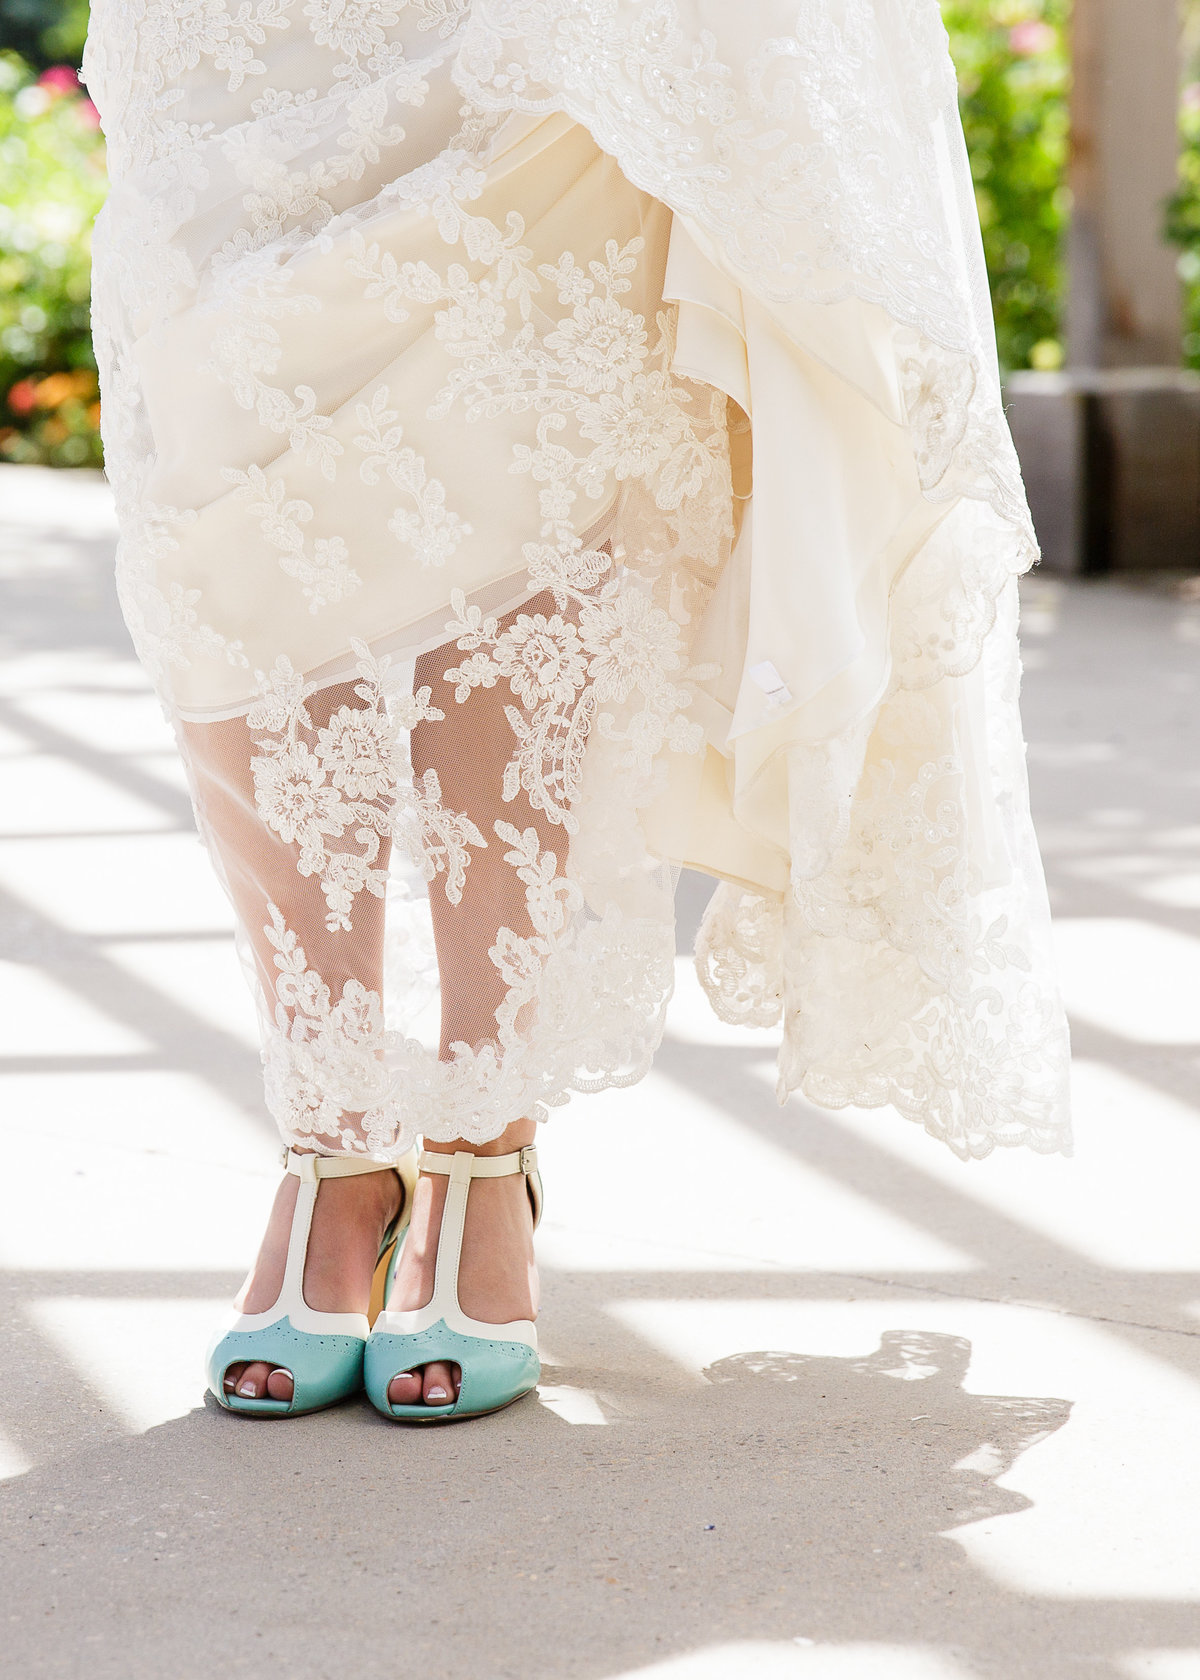 brides-details-dress-shoes